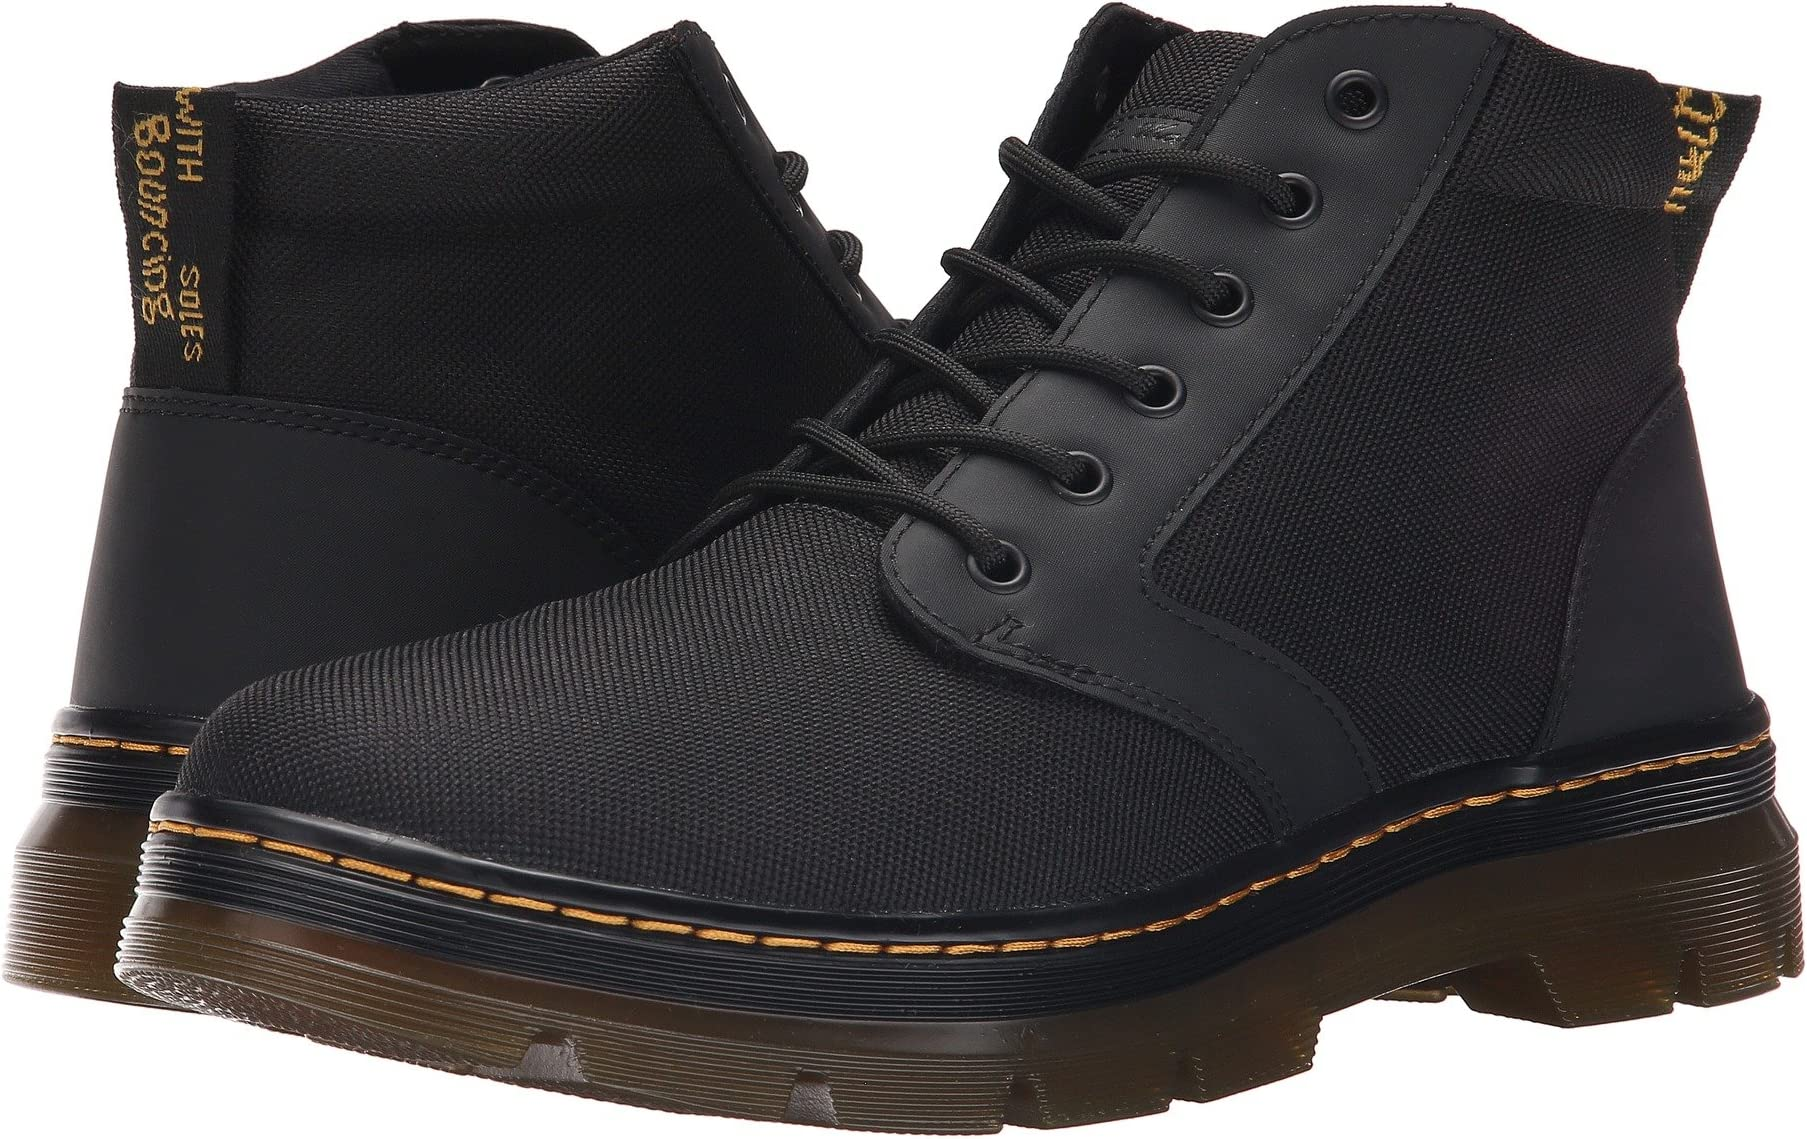 united kingdom offer discounts on feet images of Dr. Martens Boots, Shoes, and More | Zappos.com